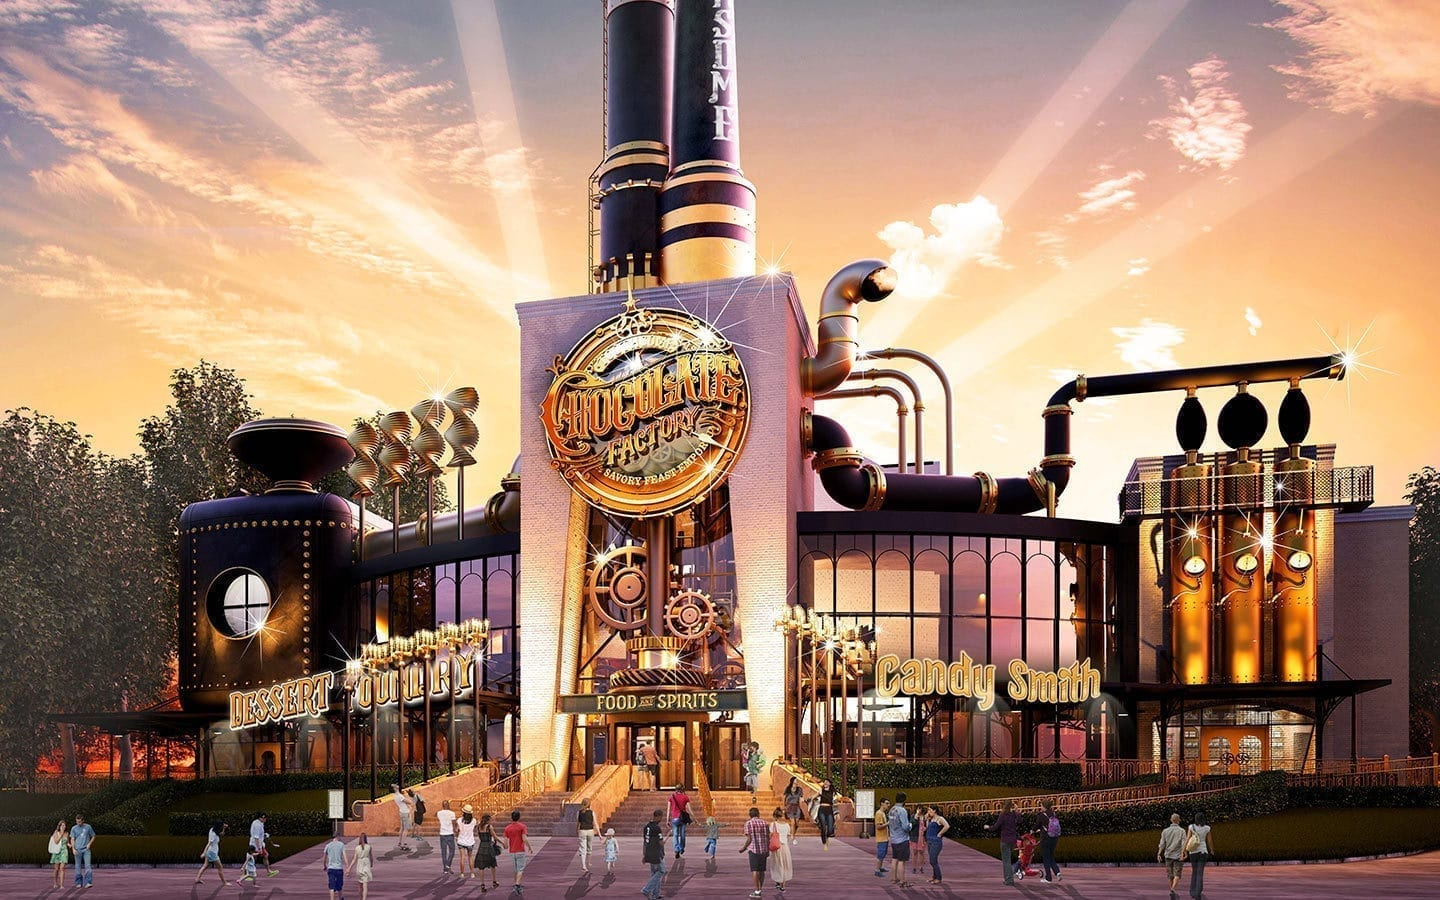 Image of the Universal Chocolate Emporium